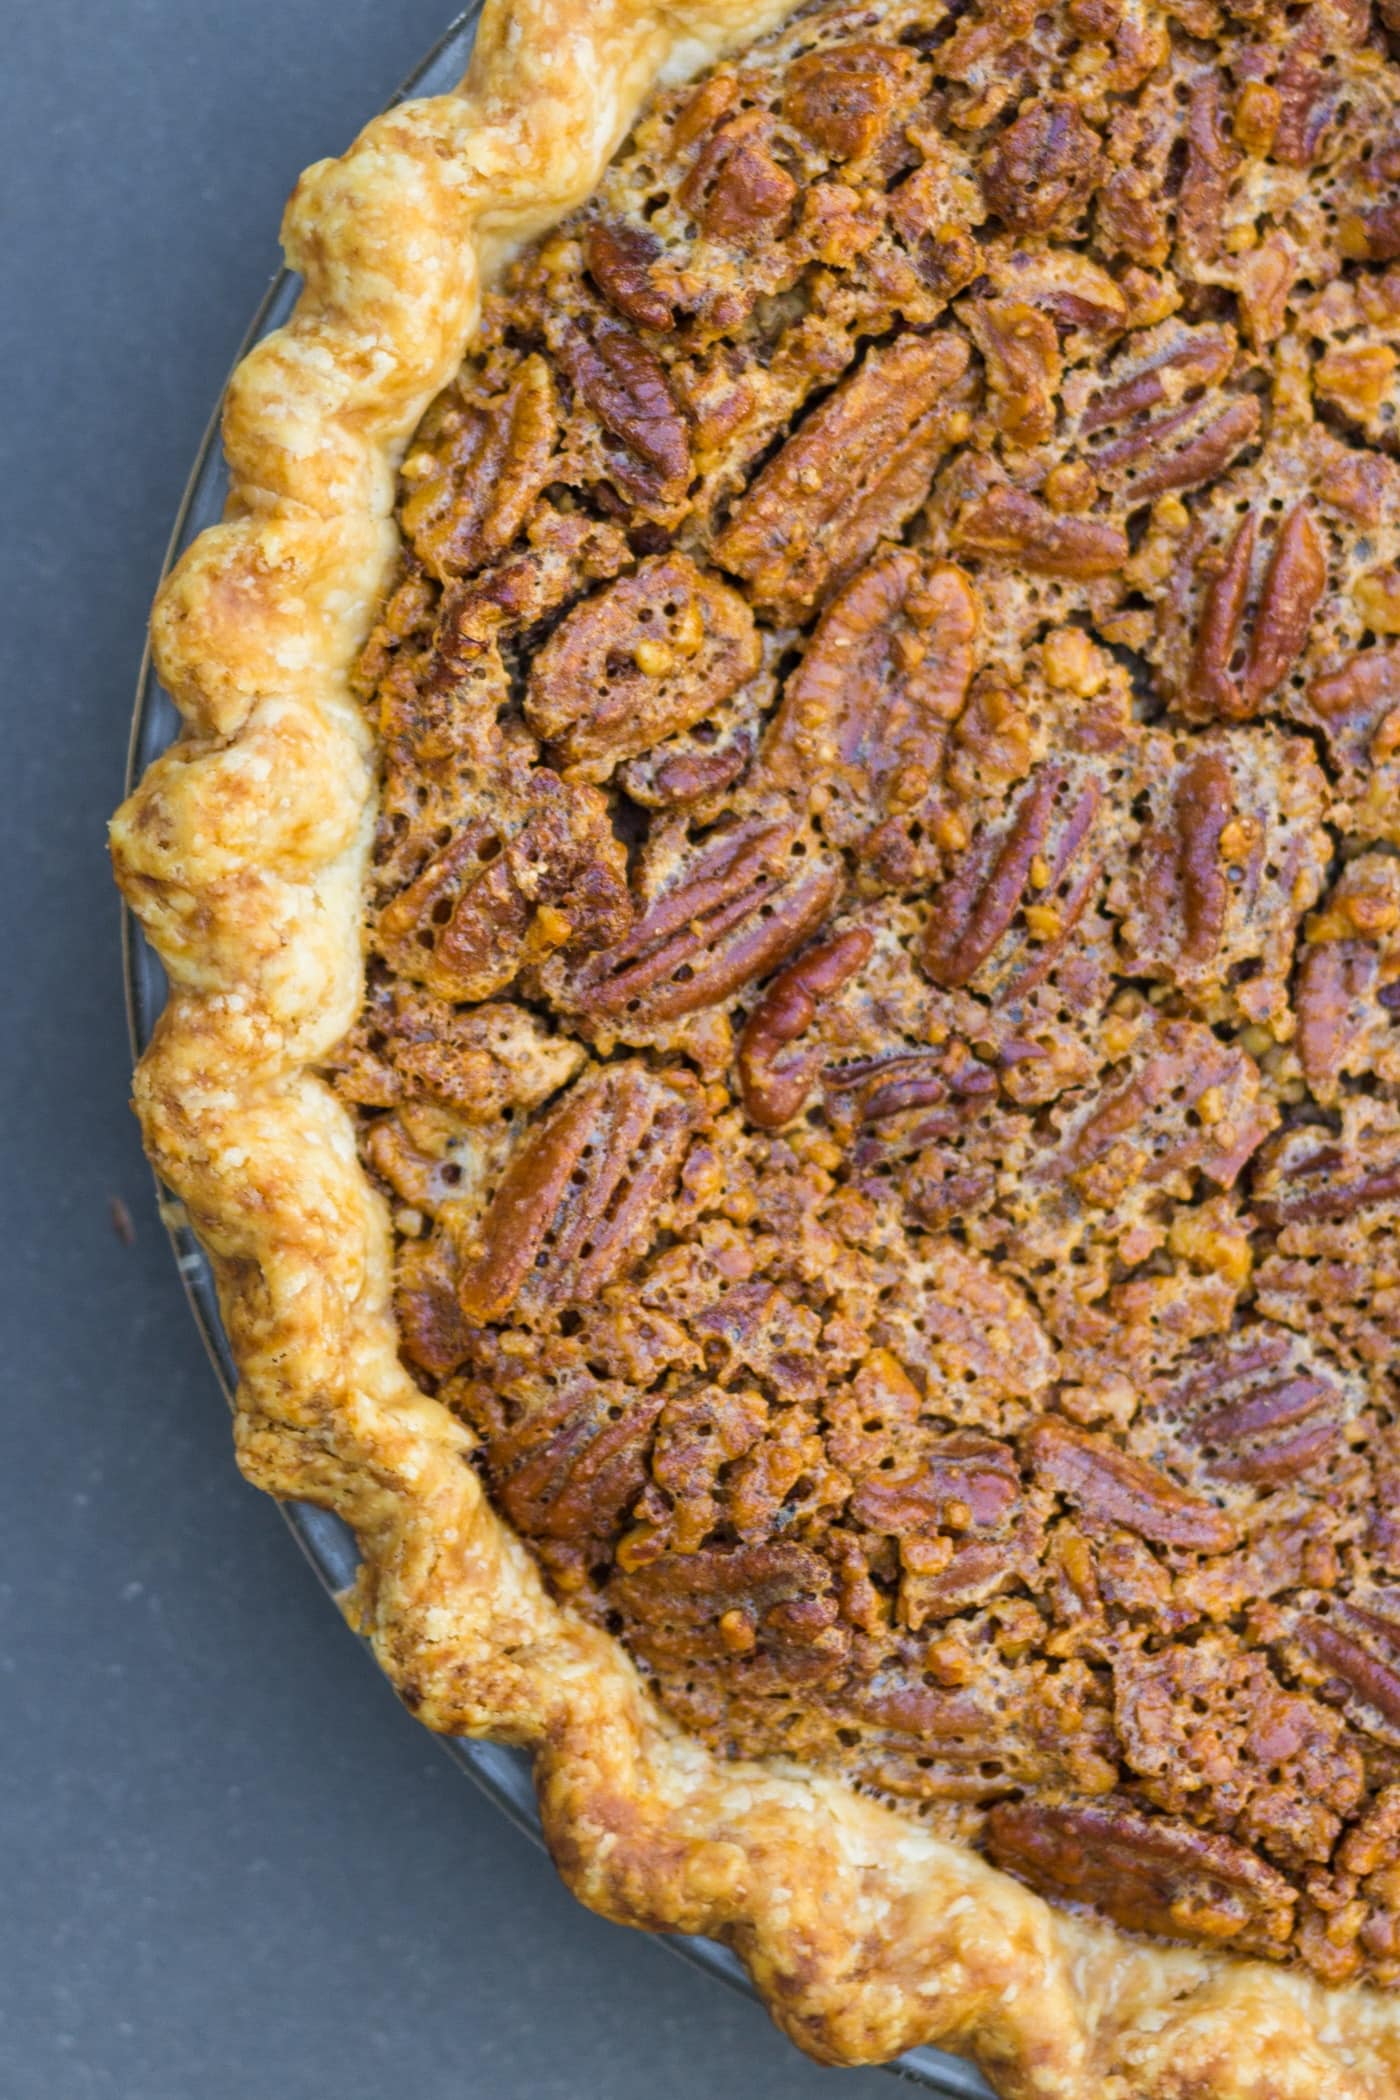 Top down view of pecan pie with pieces of pecans on top and browned crust all on blue slate surface